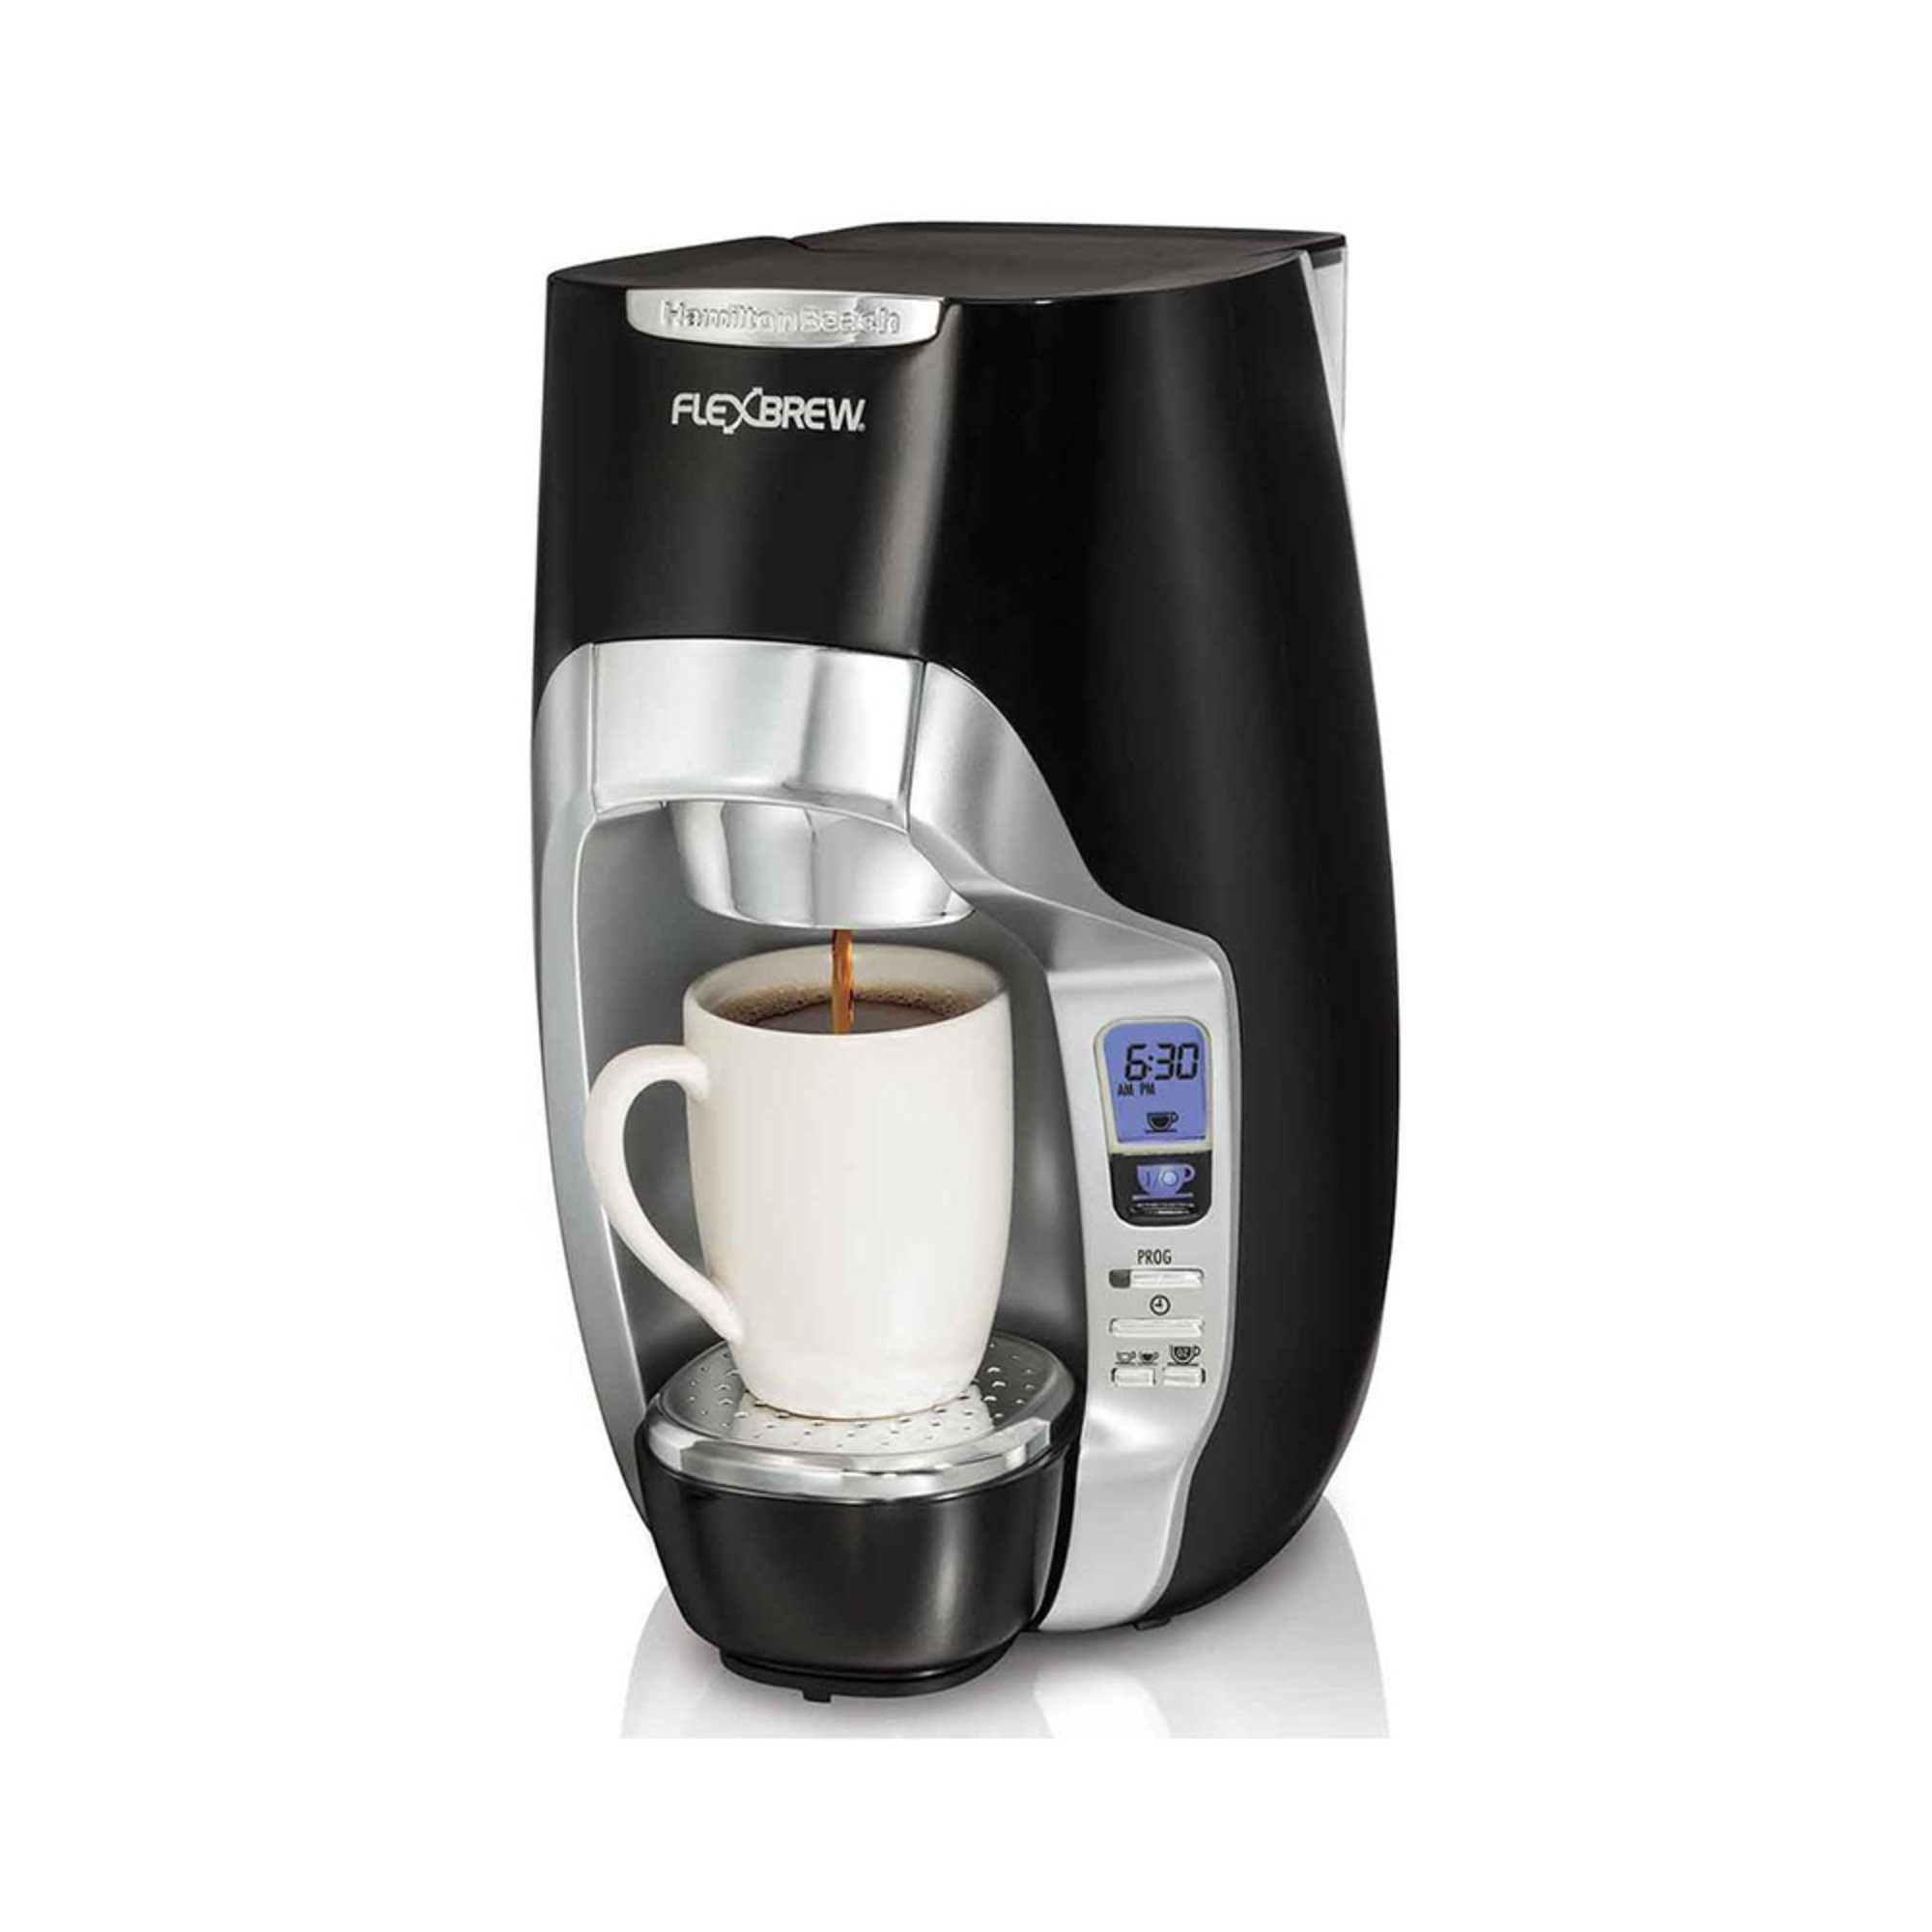 Hamilton Beach FlexBrew Programmable Single Serve Coffee Maker